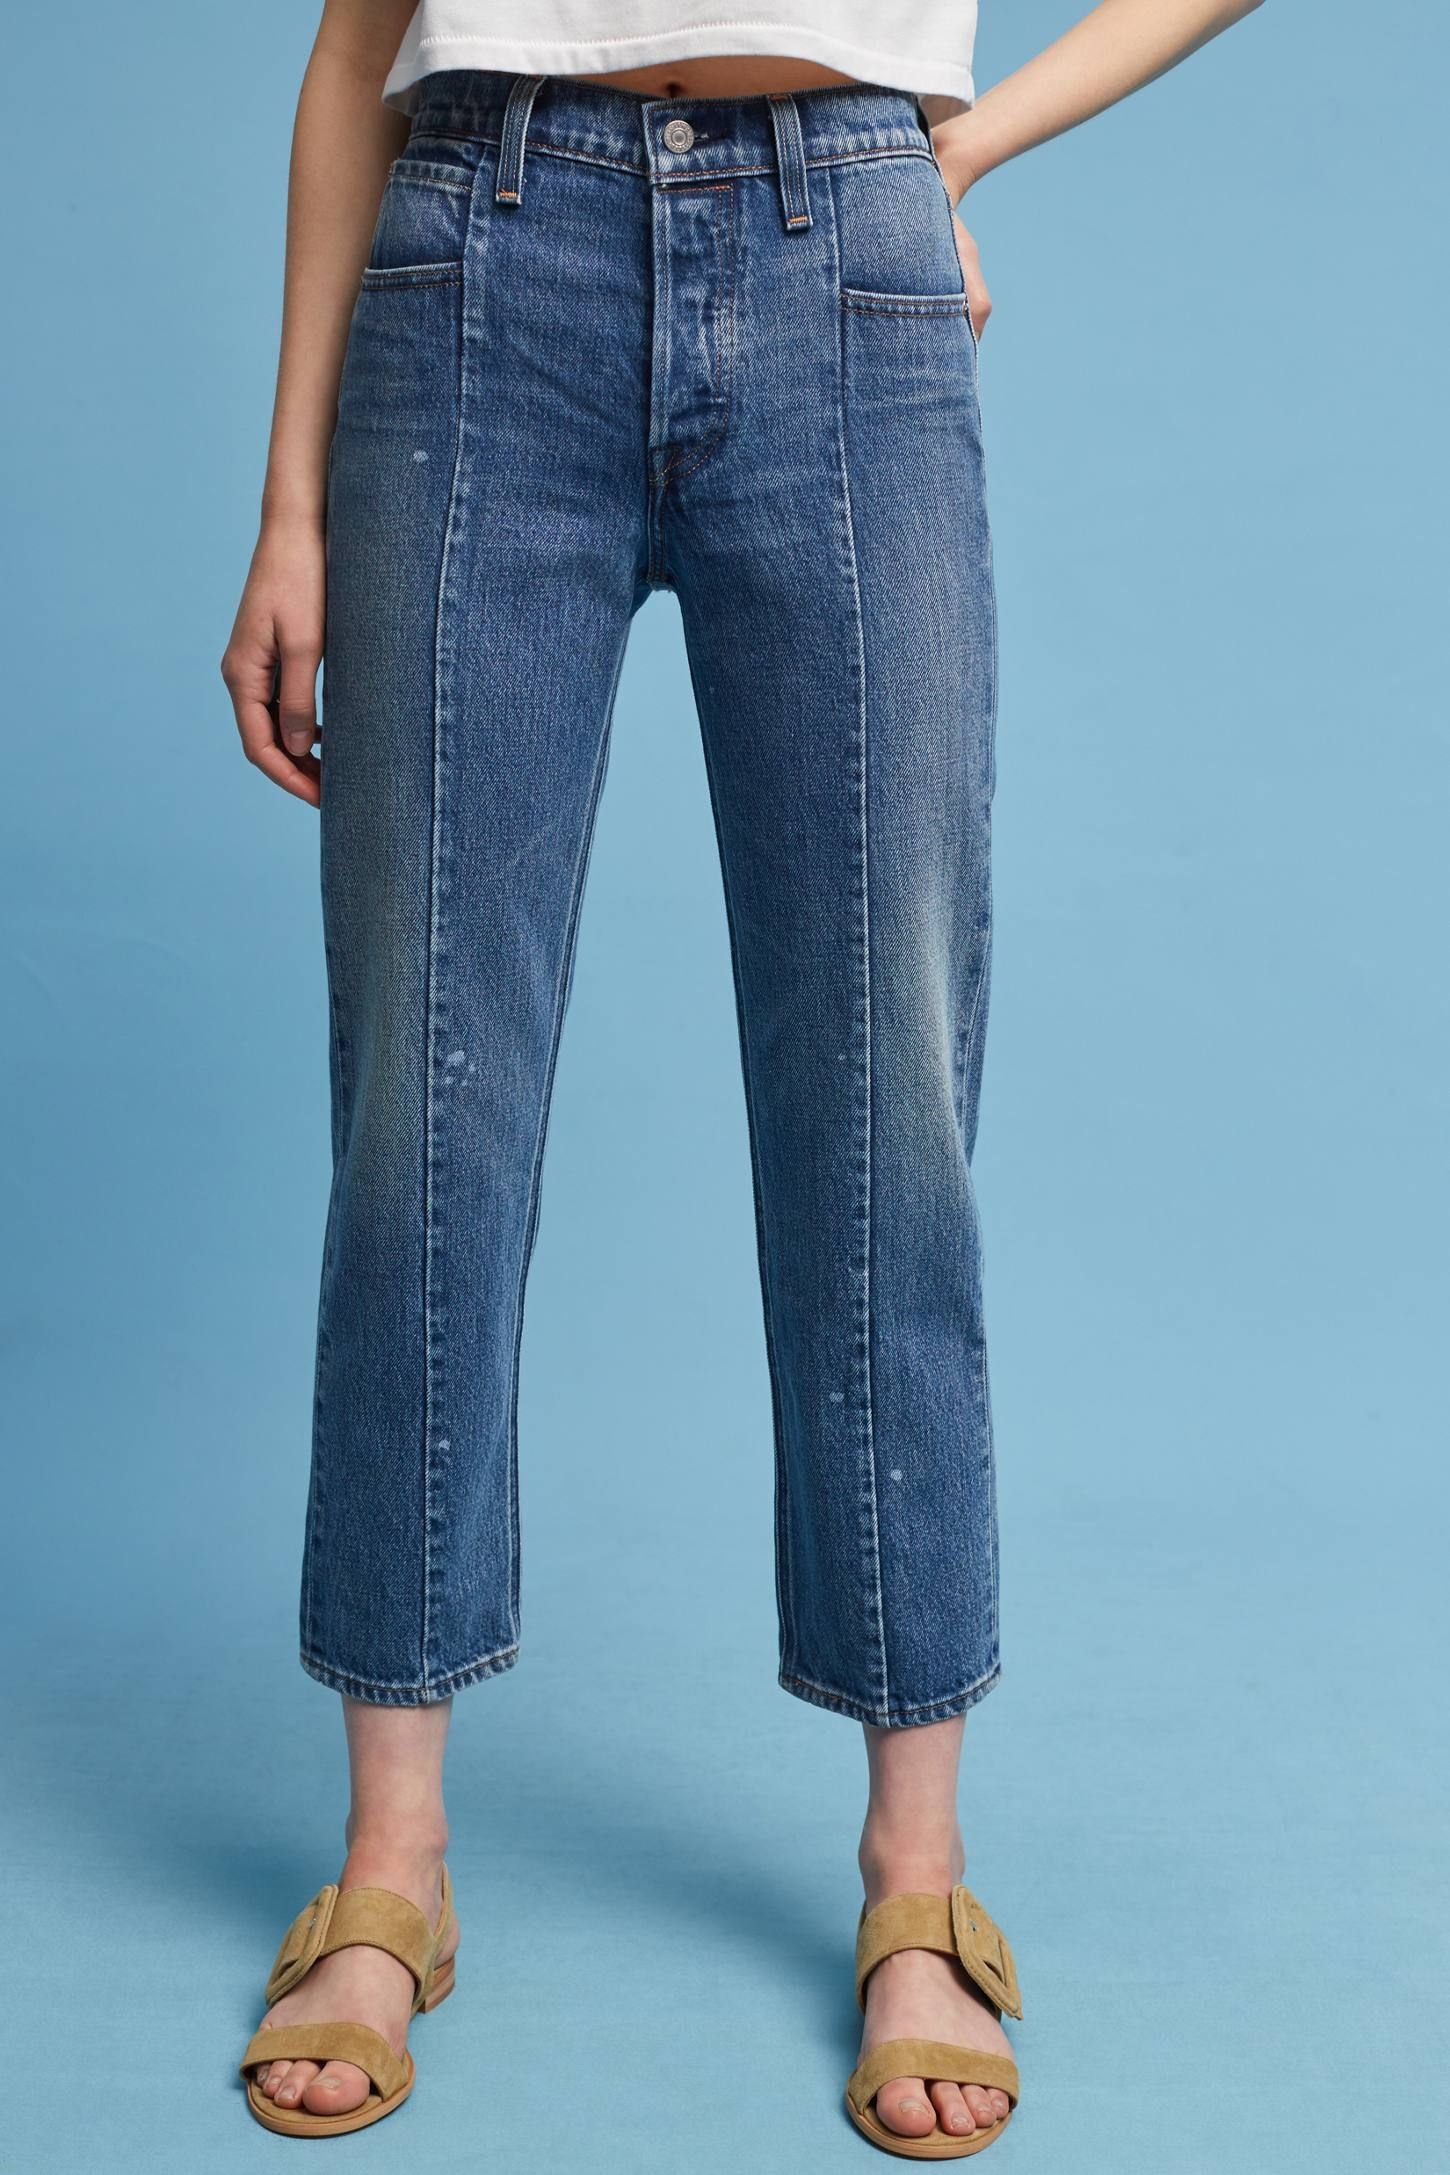 c95cba8bb Shop the Levi s Altered Straight High-Rise Cropped Jeans and more  Anthropologie at Anthropologie today. Read customer reviews